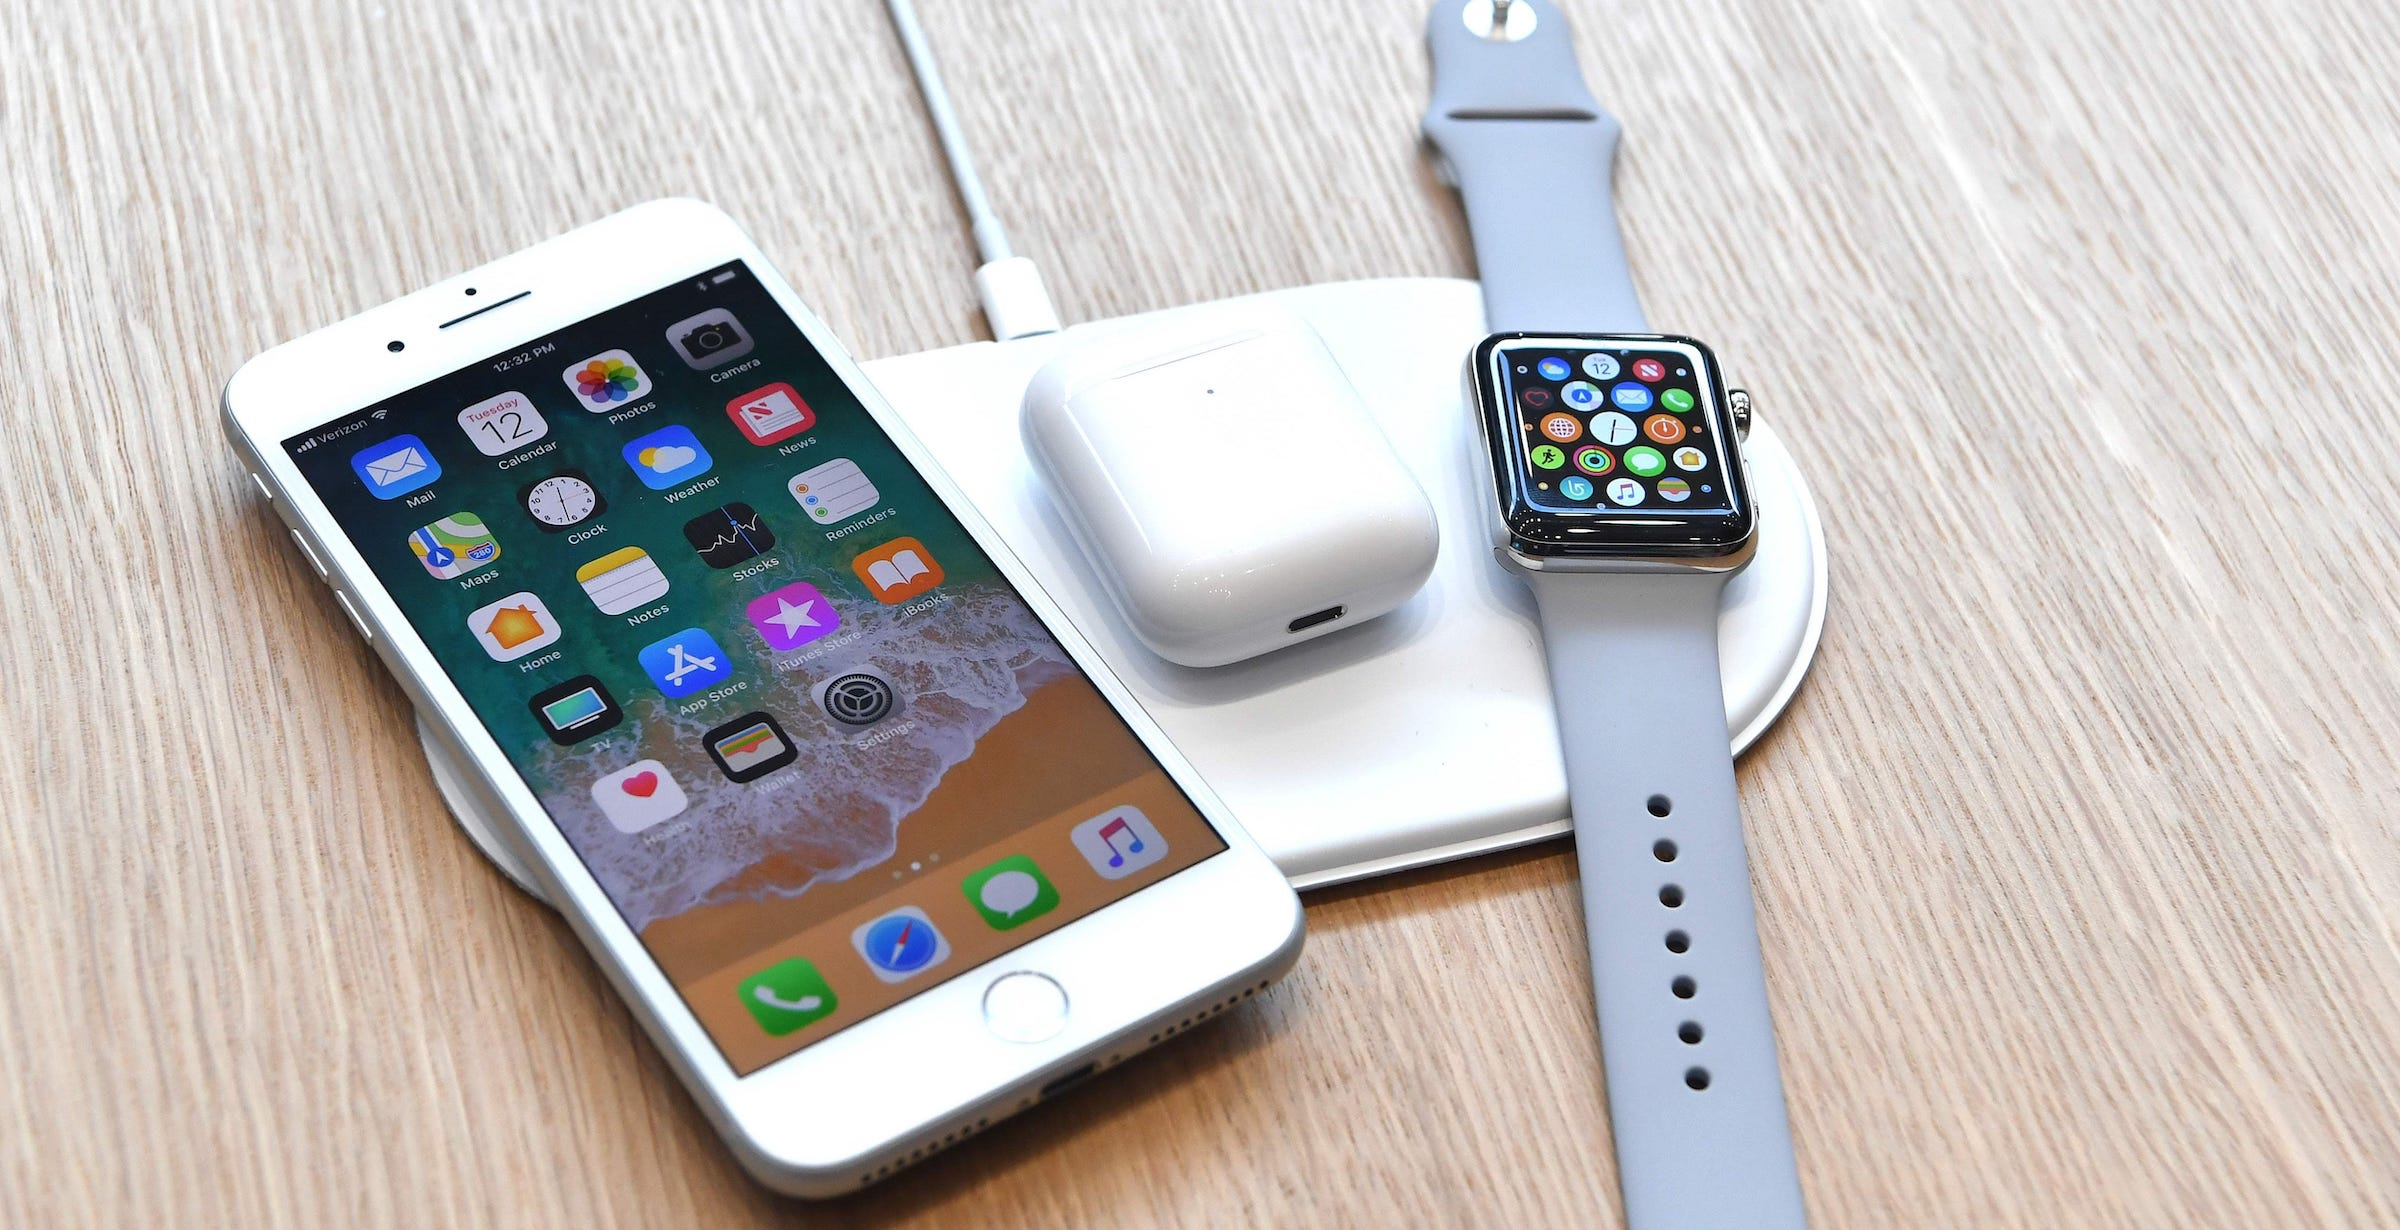 Apple Air Power Could be One More Thing